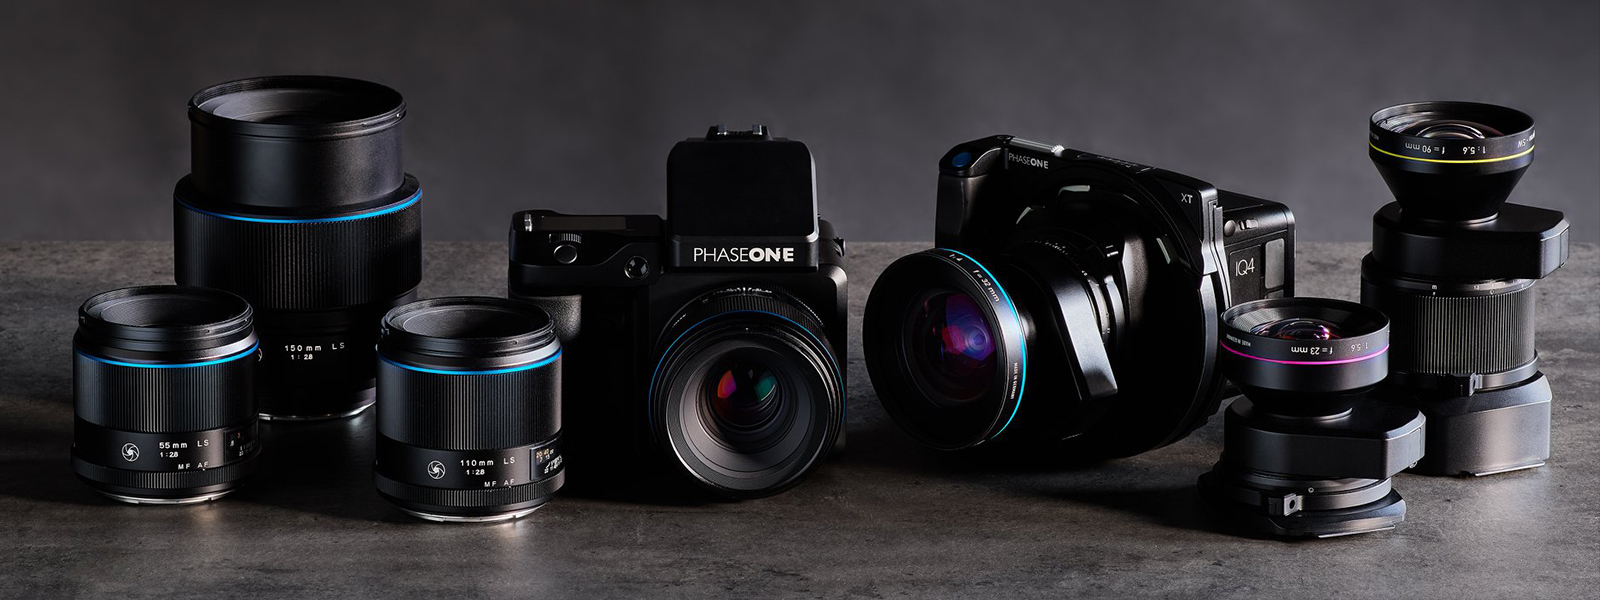 Phase One is the world's leader in open-platform based medium format camera systems and professional photography software!